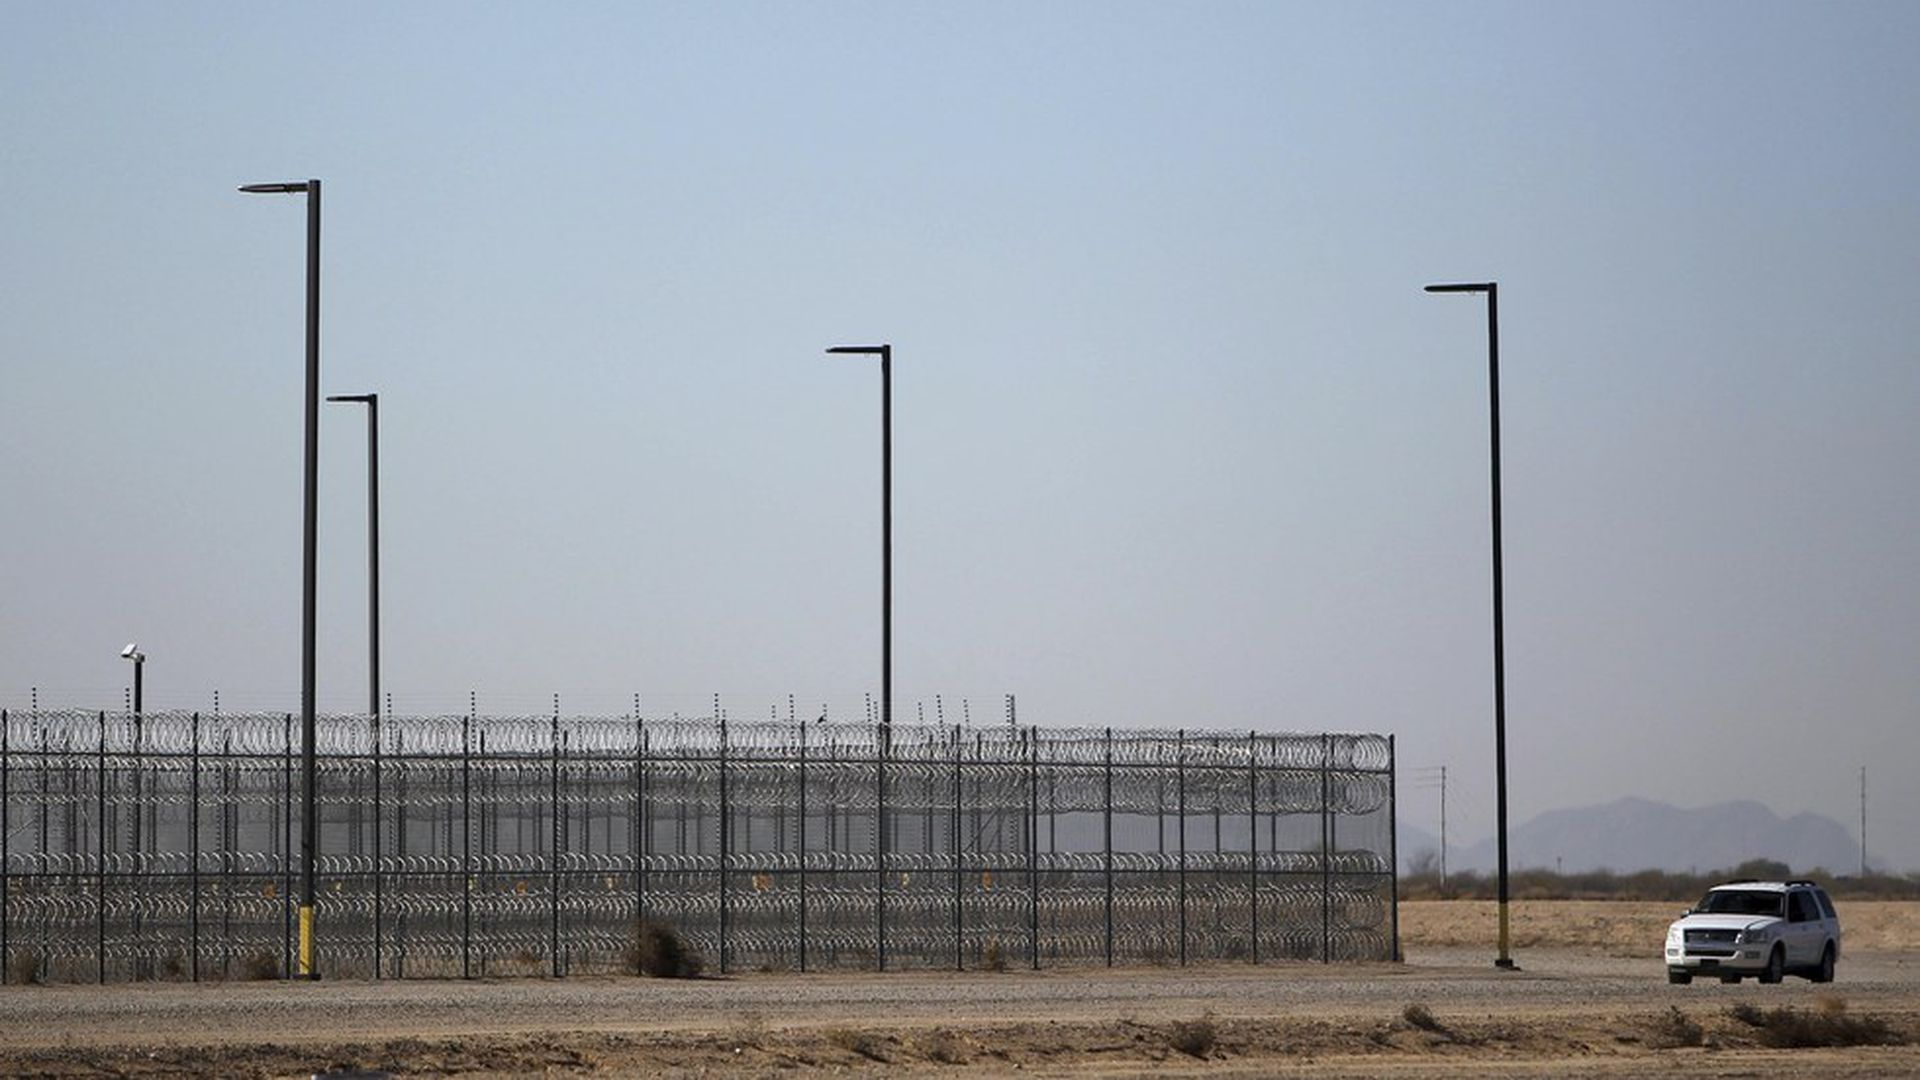 U.S. immigrant prisons face scrutiny for poor conditions